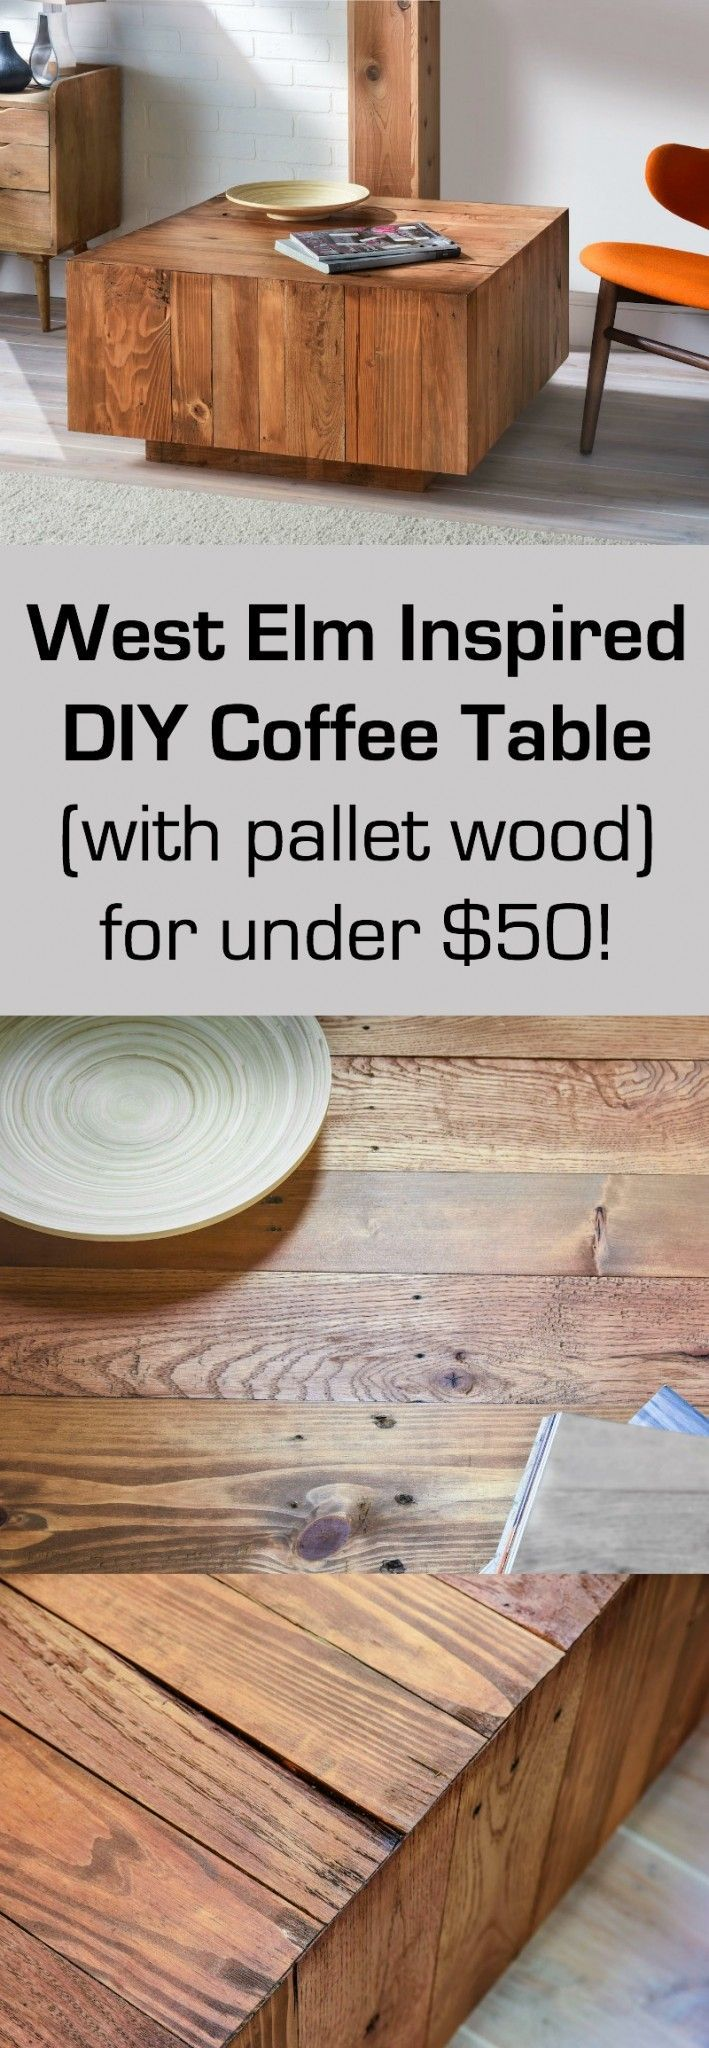 332 Best Diy Projects Images On Pinterest Woodworking Plans Wood Electronics Mini Project For Diploma Students This Coffee Table Was Inspired By A West Elm Find 999 Except We